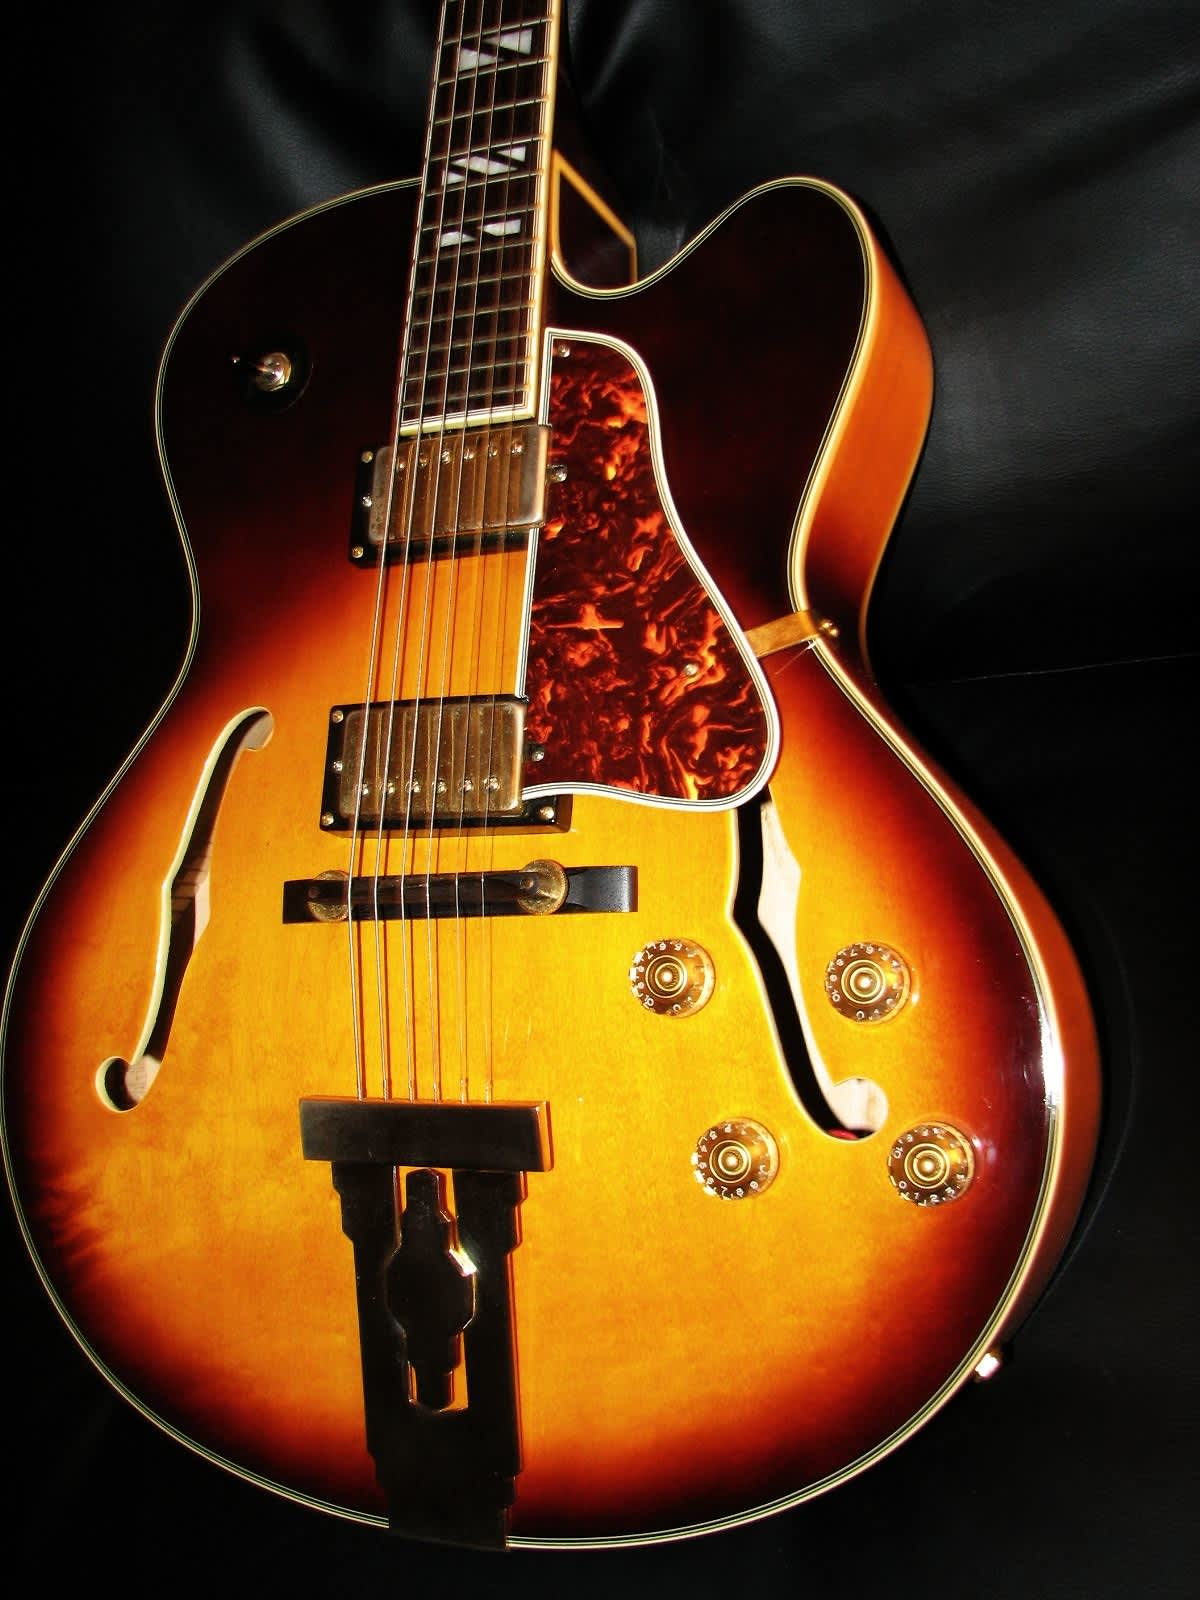 dating aria pro ii guitars Find the best selection of aria guitars at guitar center at the guaranteed lowest prices and free shipping.